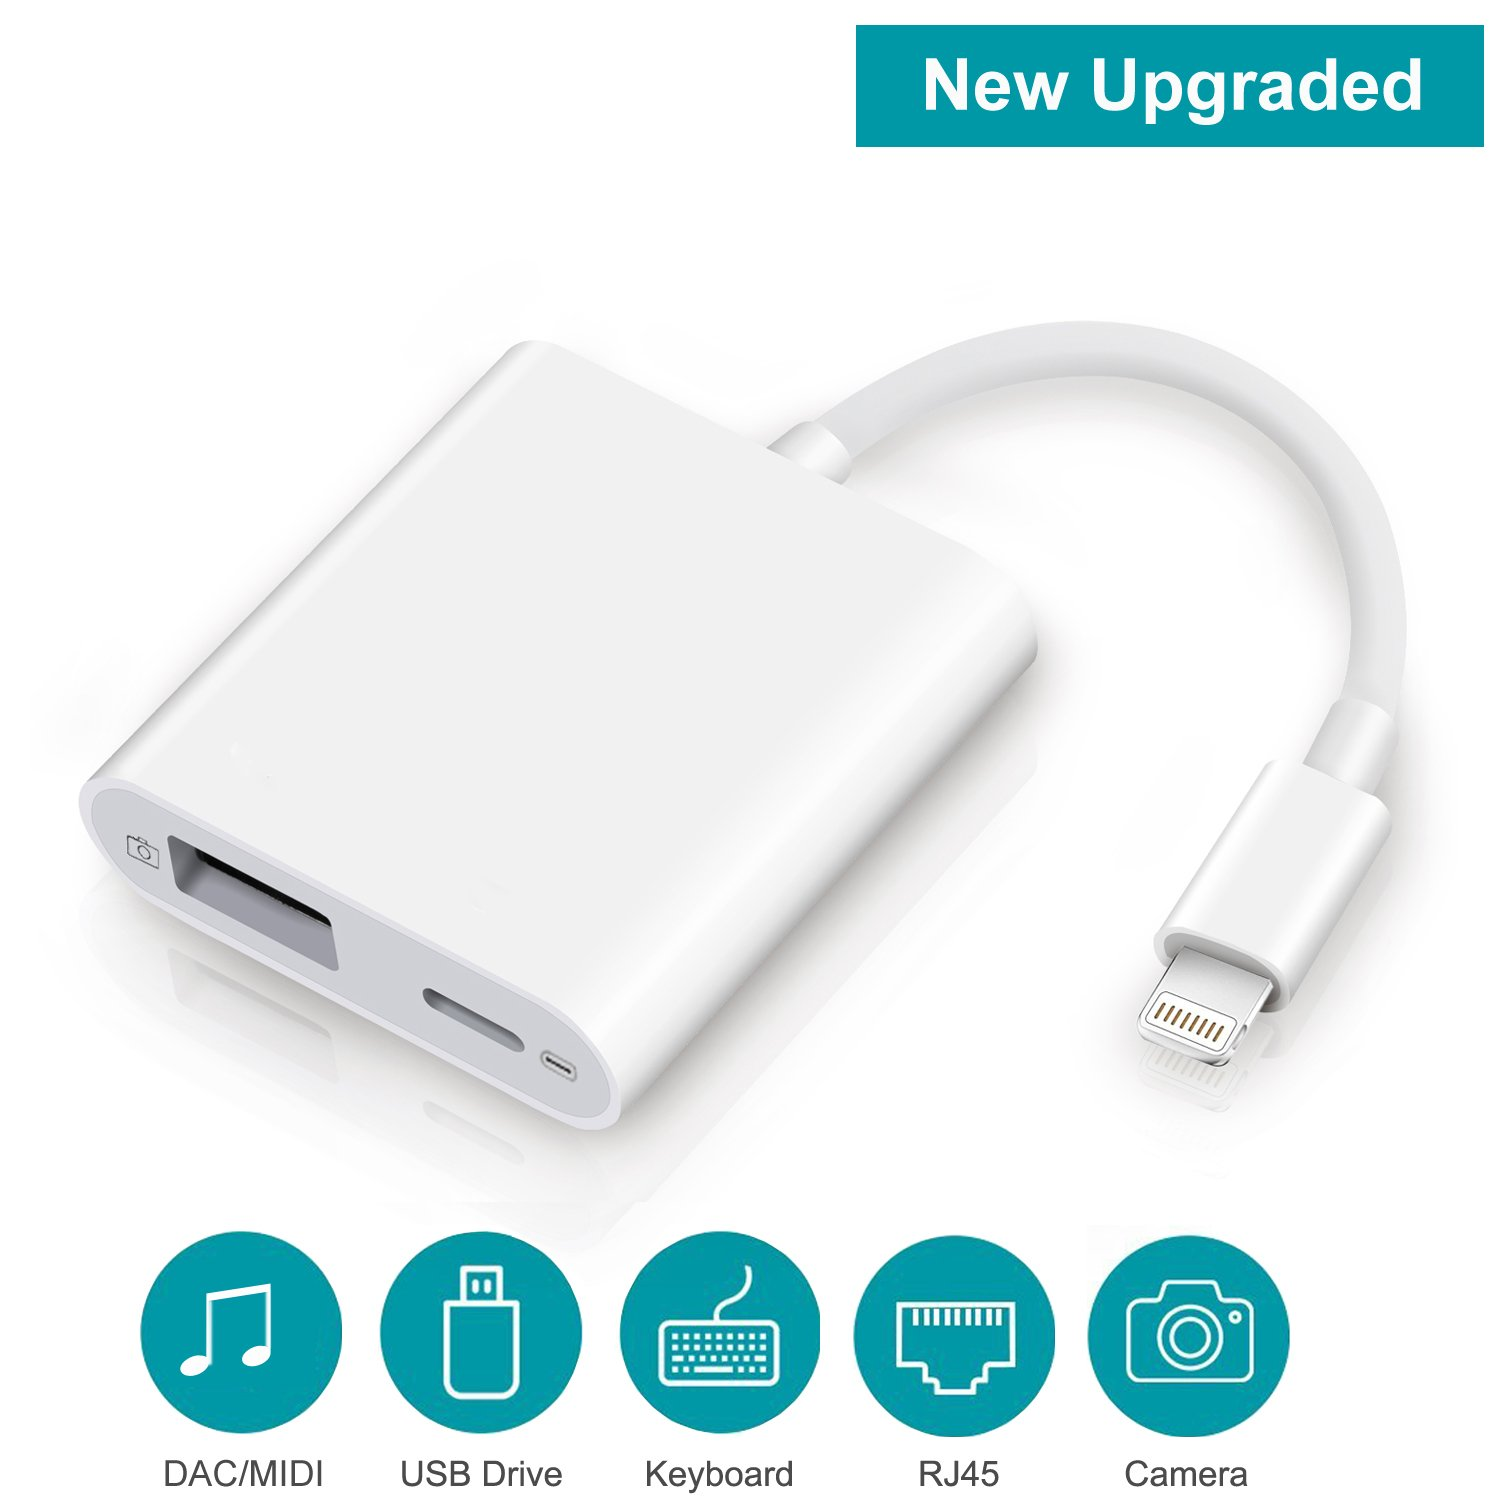 Lightning to USB Camera Adapter, FA-STAR Lightning to USB 3.0 Female OTG Adapter Cable with Charging Interface for iPhone iPad, Supports Connect USB Peripherals within 500mAh of Currents, [Upgraded]